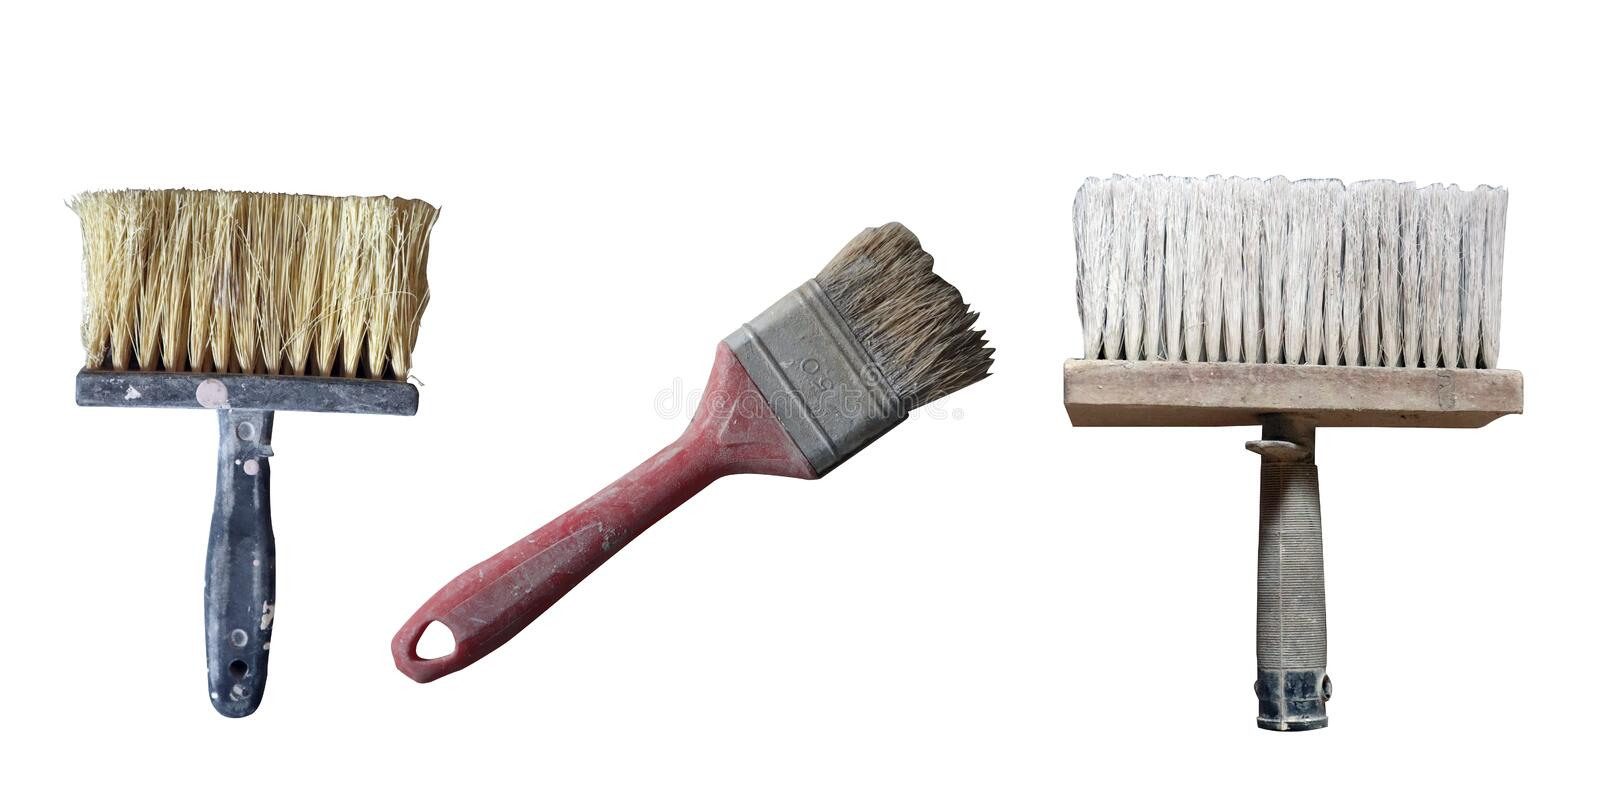 Old used painting tools isolated on white background stock image